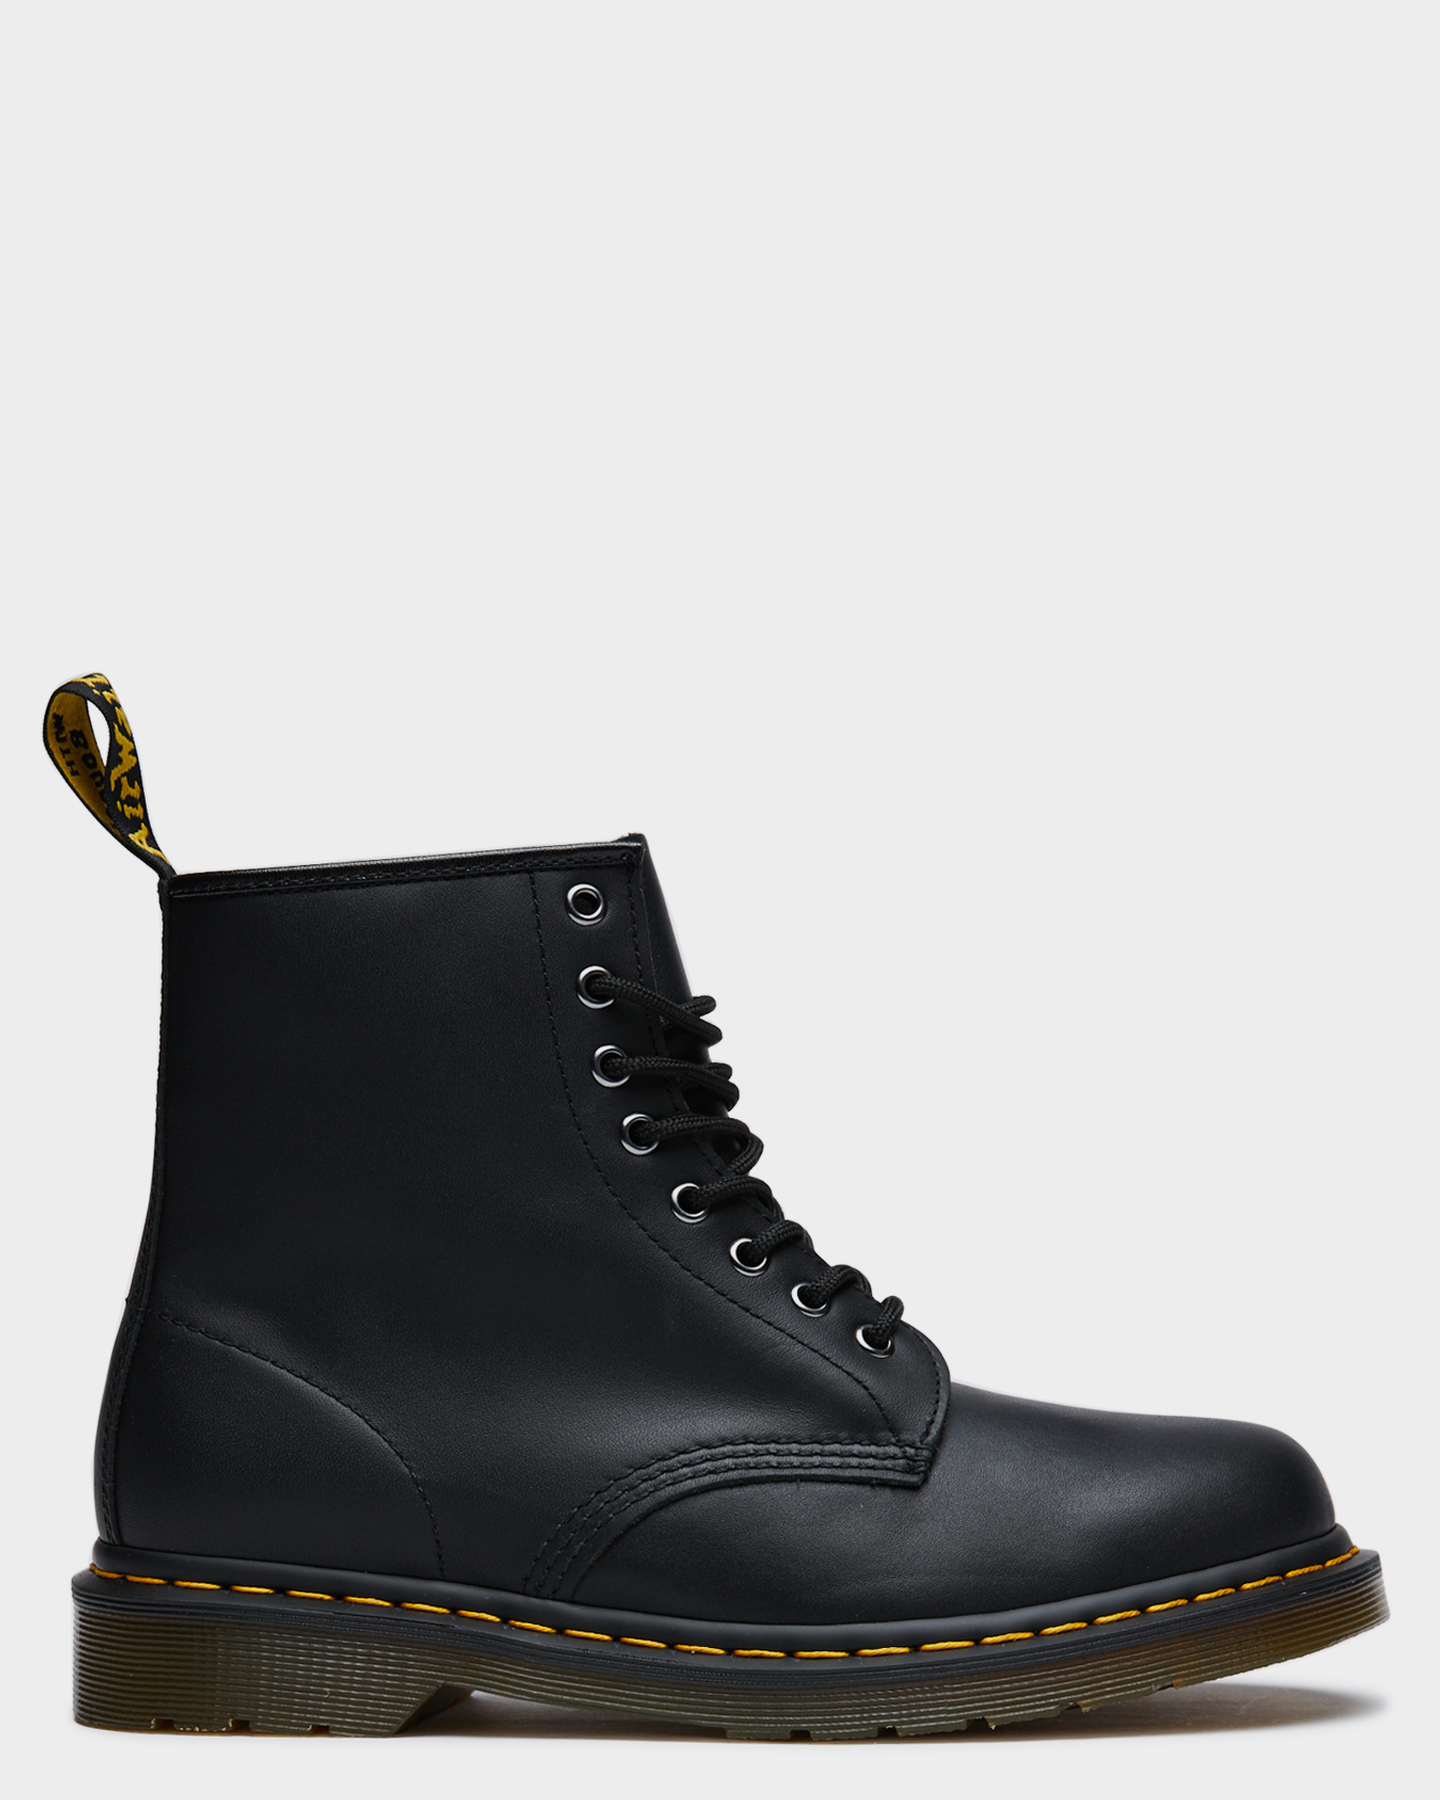 dr martens nappa vs smooth